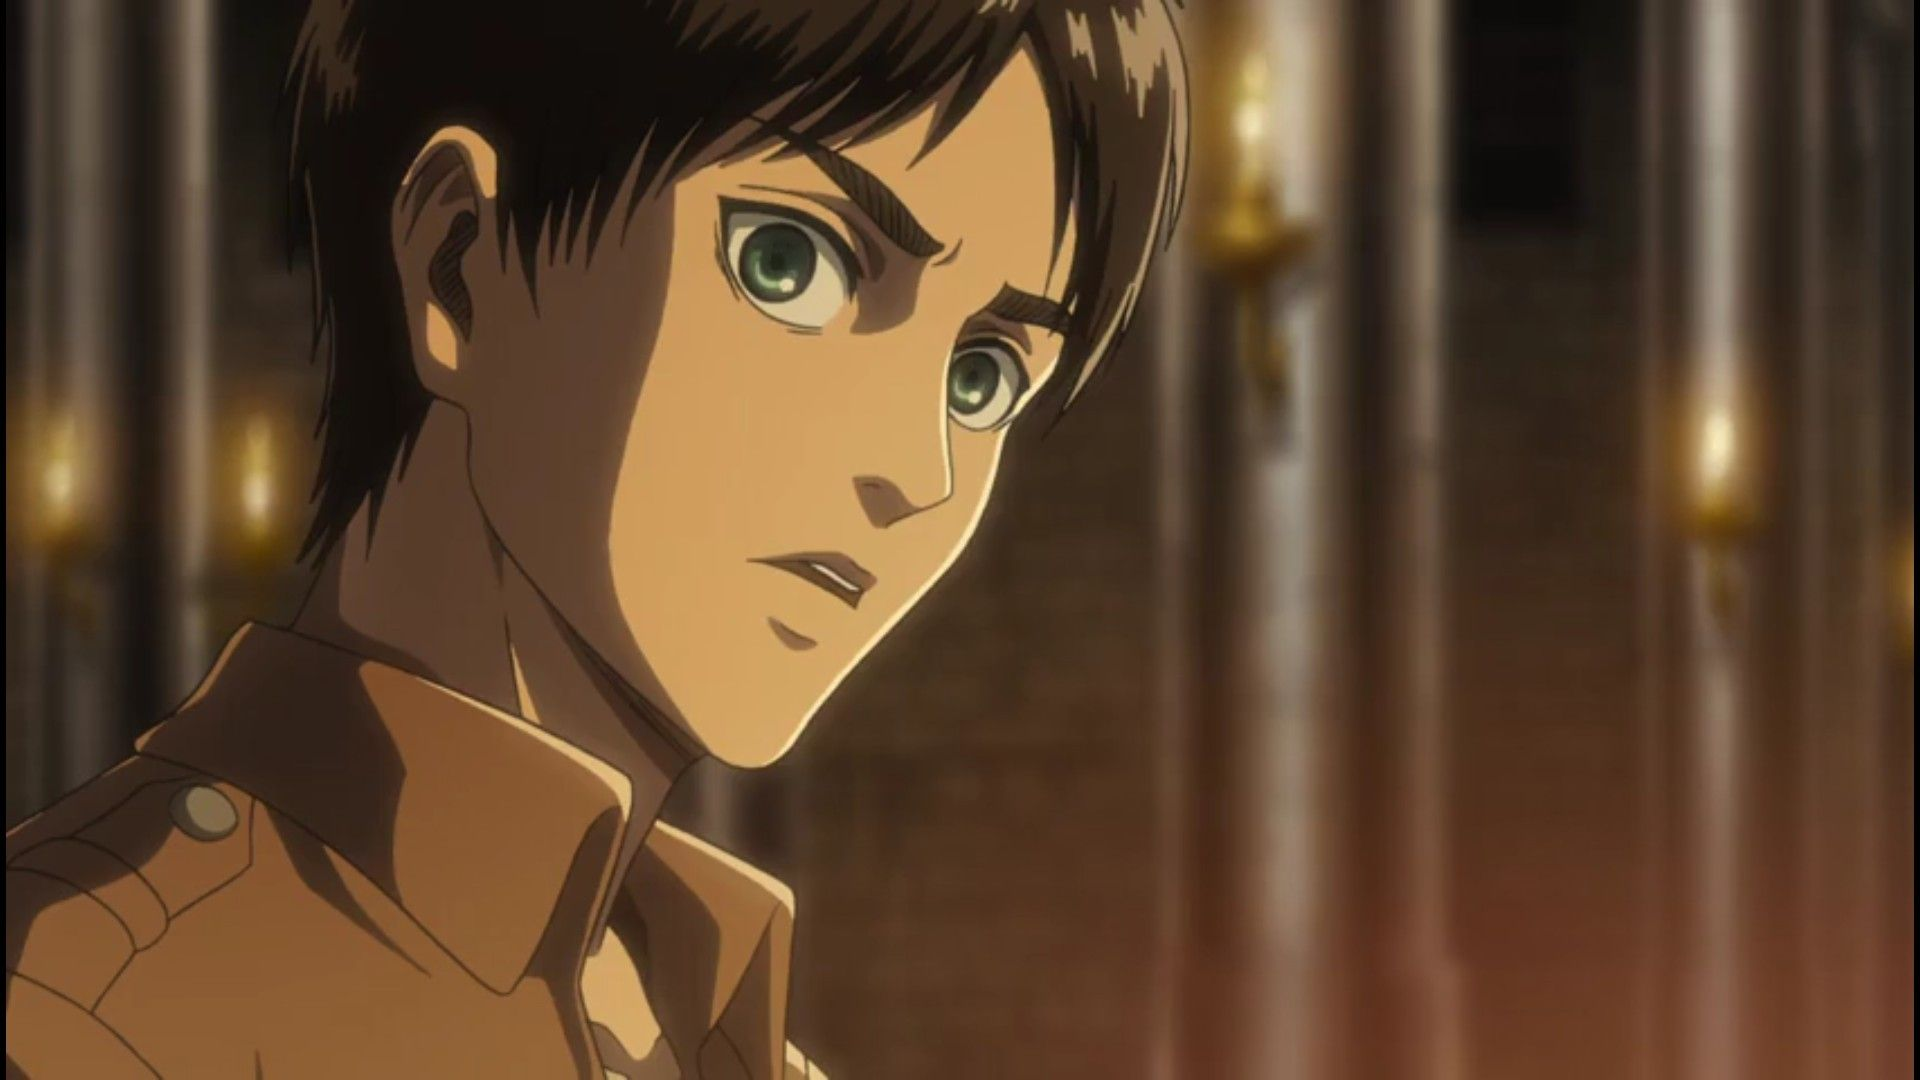 Eren SnK season 3 Attack on titan